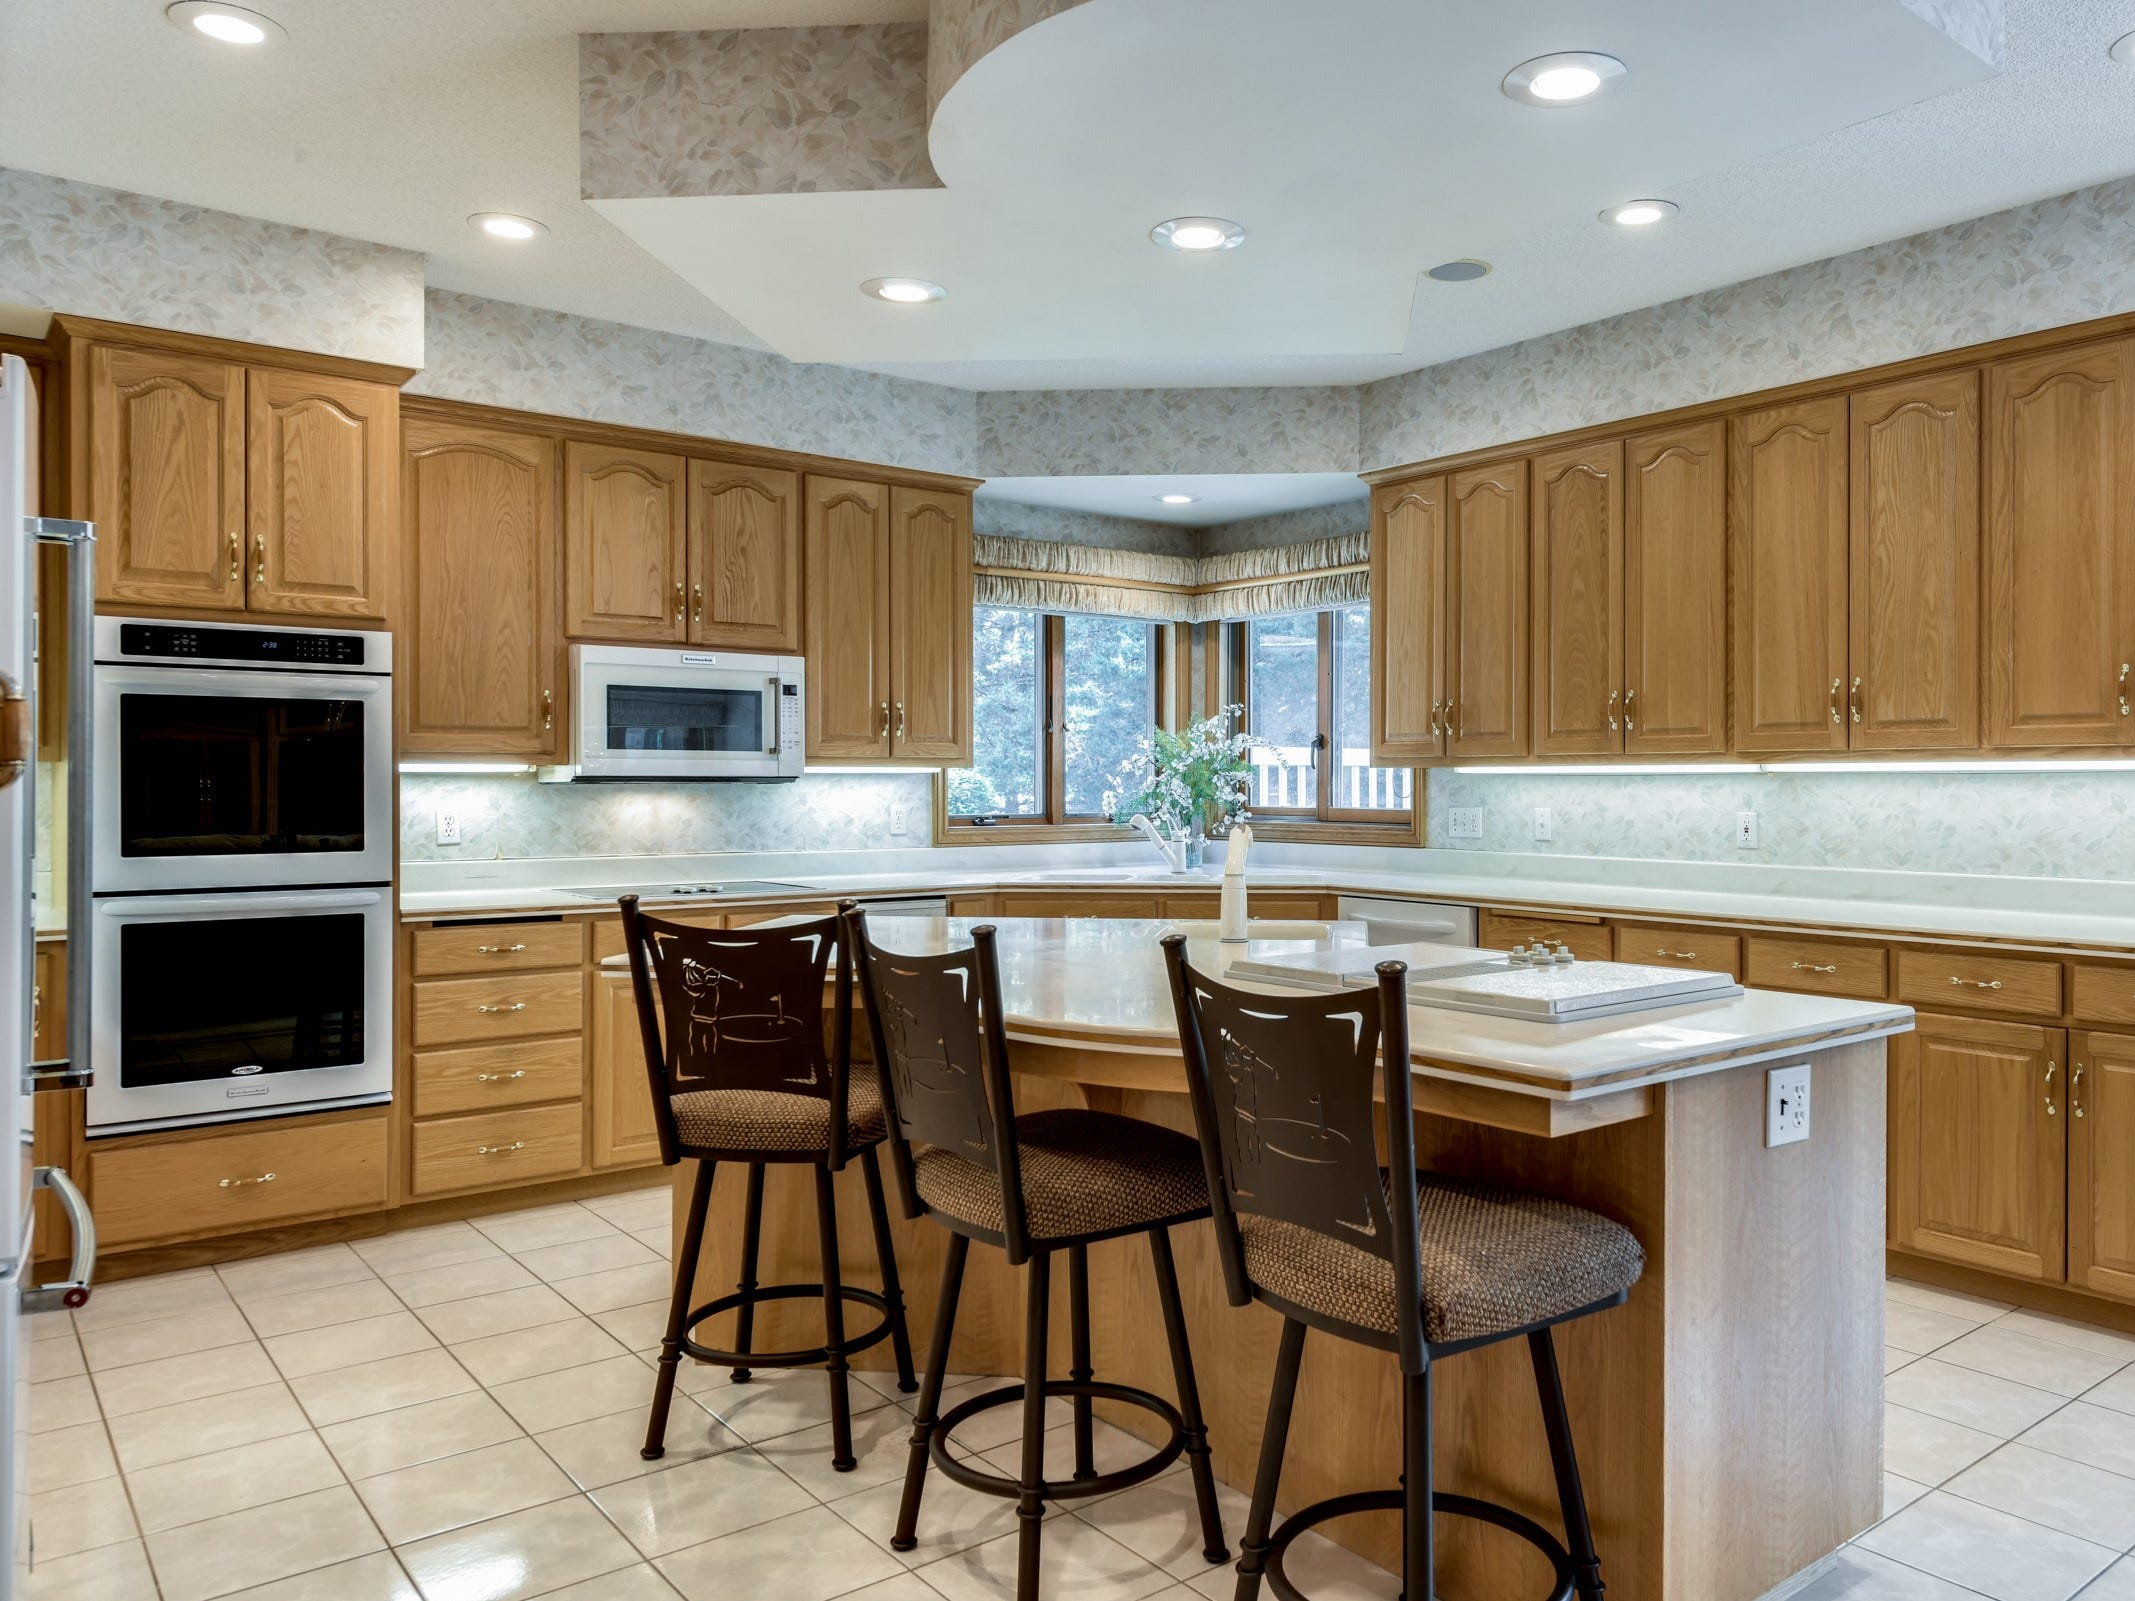 The kitchen features a large center island with a cooktop, prep sink and space for sitting.